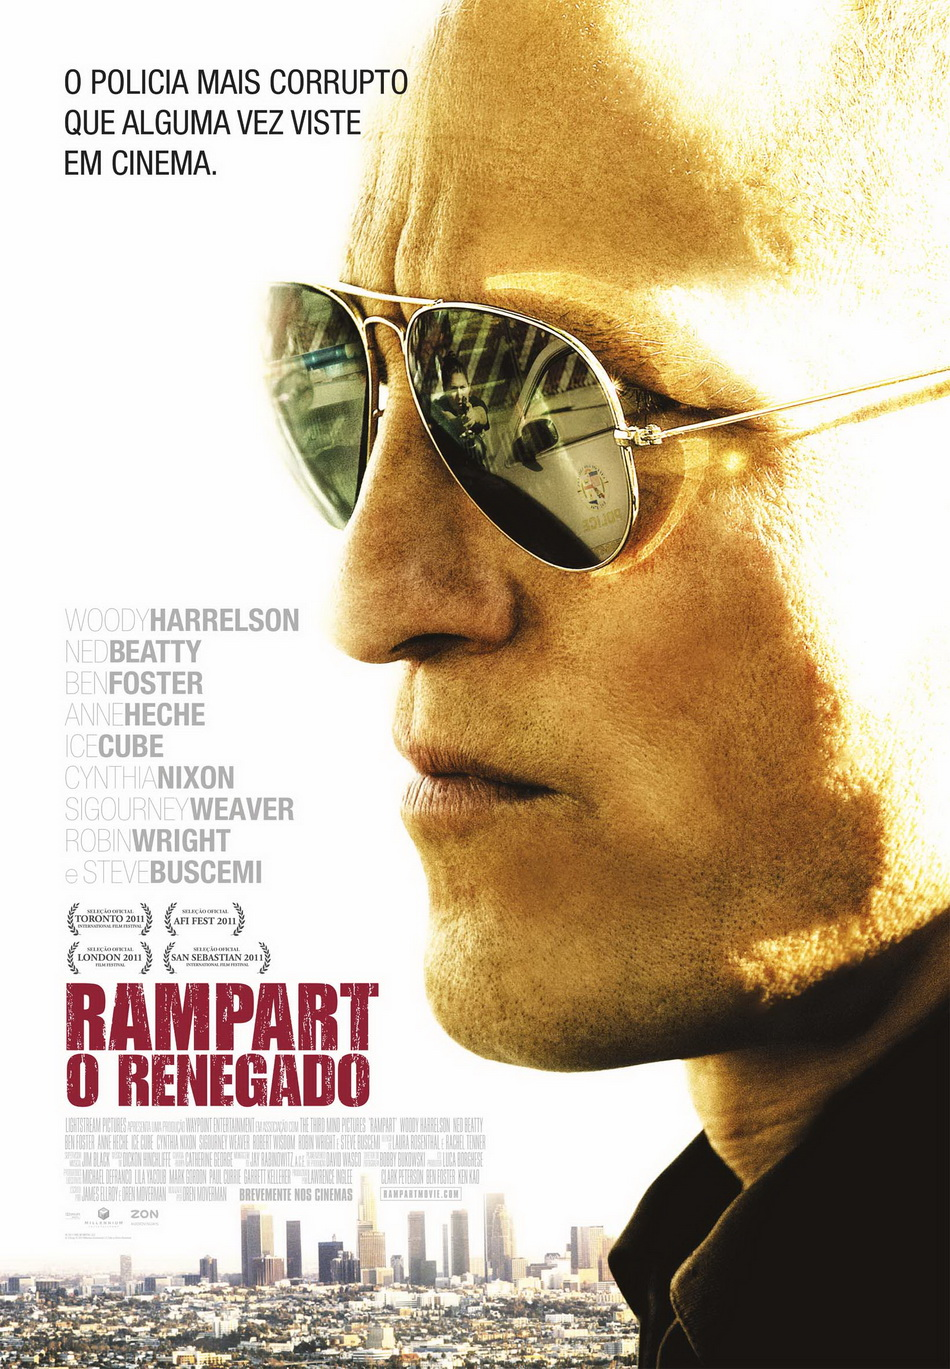 Rampart - O Renegado